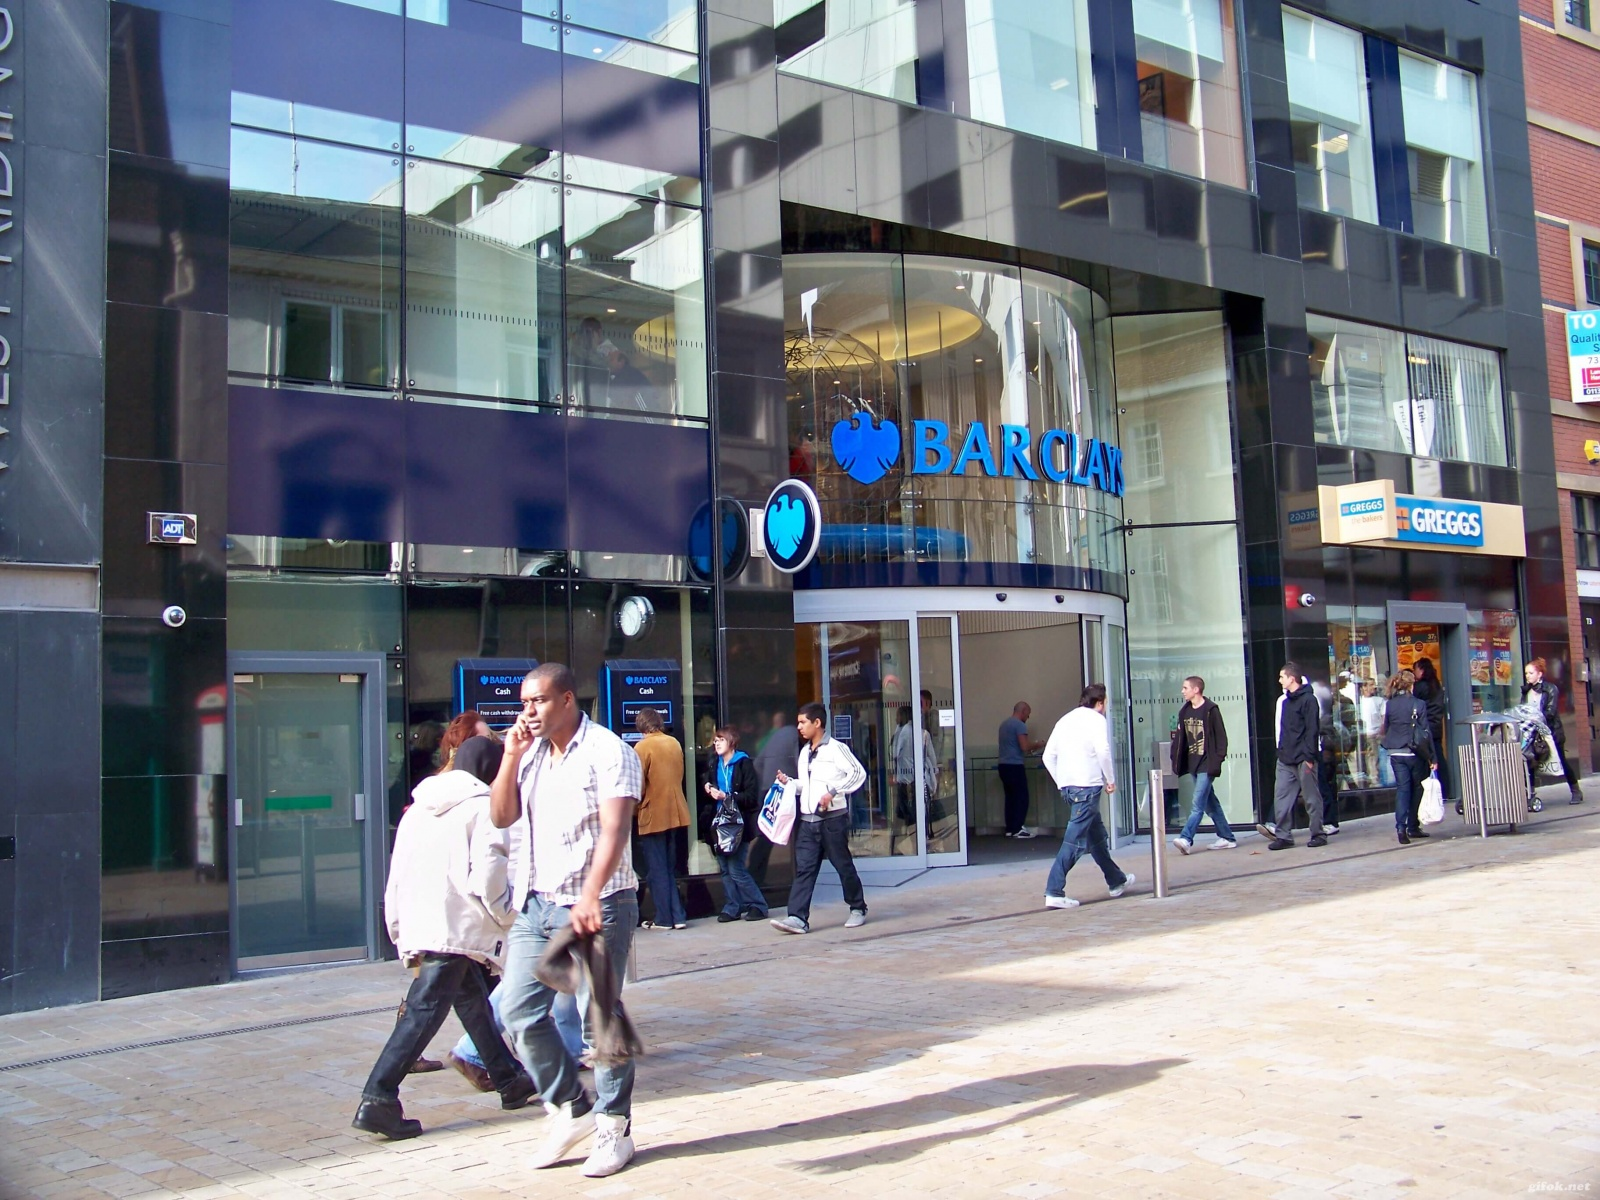 Barclays-becomes-the-first-high-street-bank-to-accept-Bitcoin.jpg